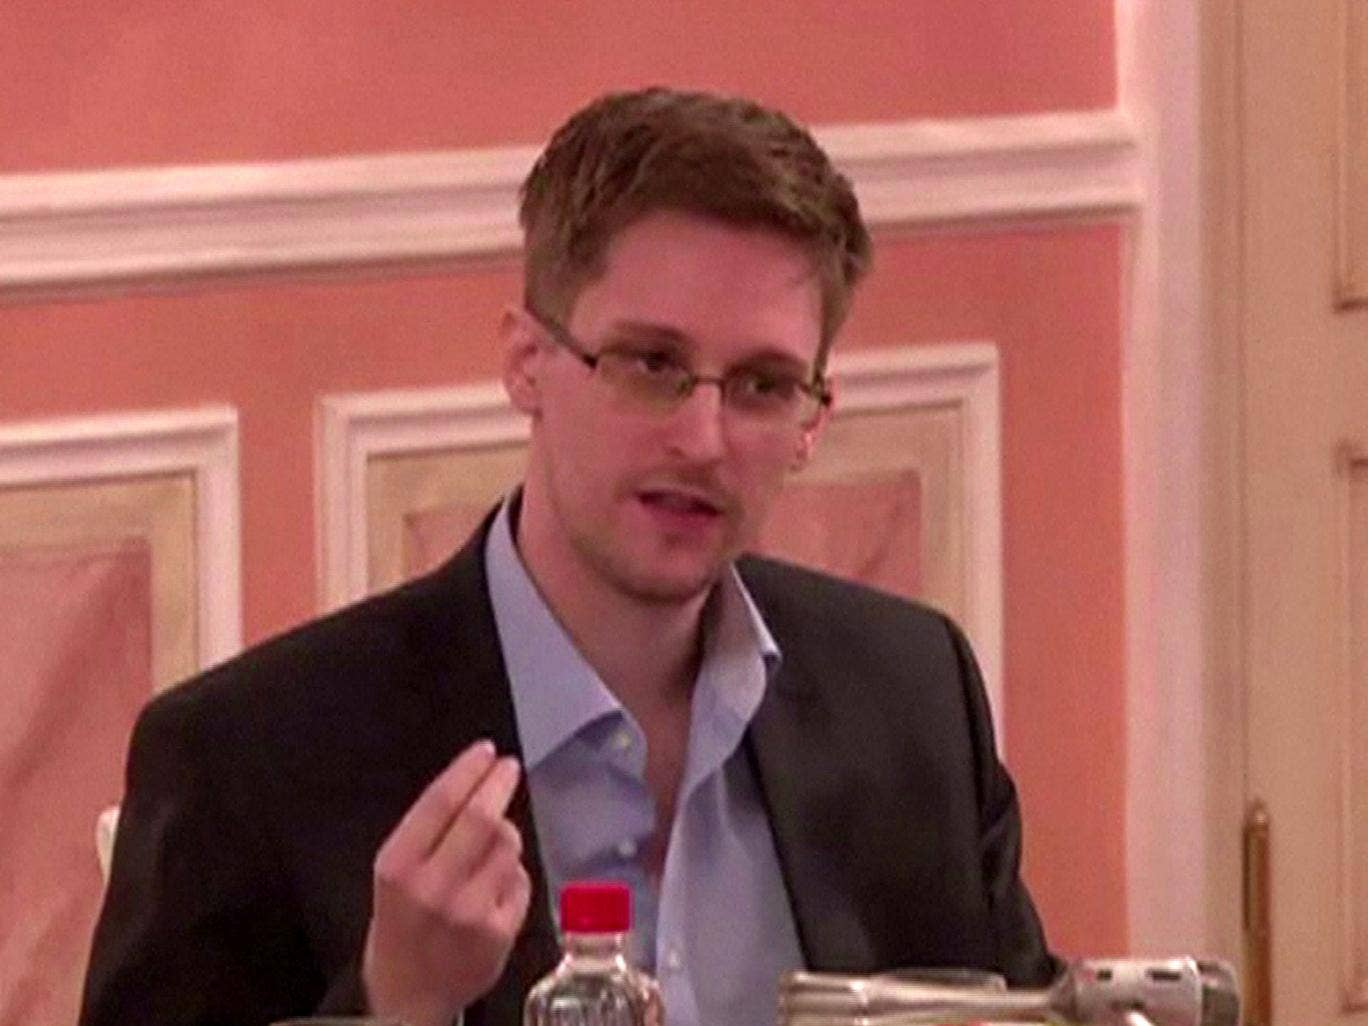 Edward Snowden speaking during his dinner with a group of four retired US ex-intelligence workers and activists at a luxurious room in an unidentified location.